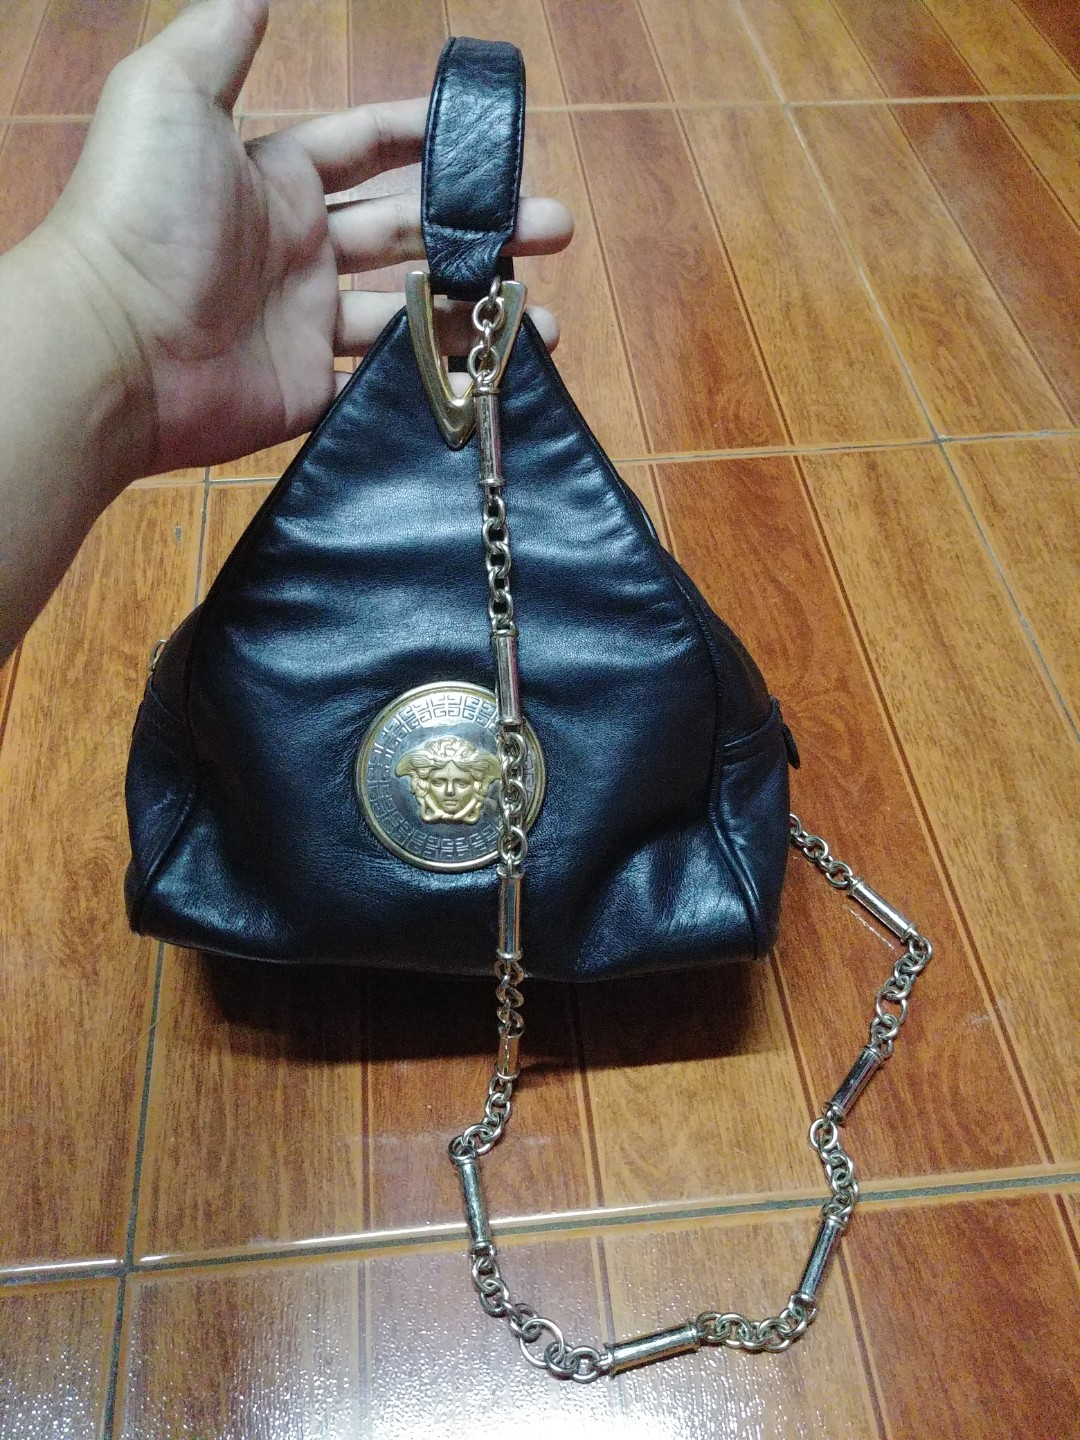 8796709fba5 RARE!! COLLECTORS MUST HAVE Gianni versace medusa head bracelet handbag,  Luxury, Bags   Wallets on Carousell